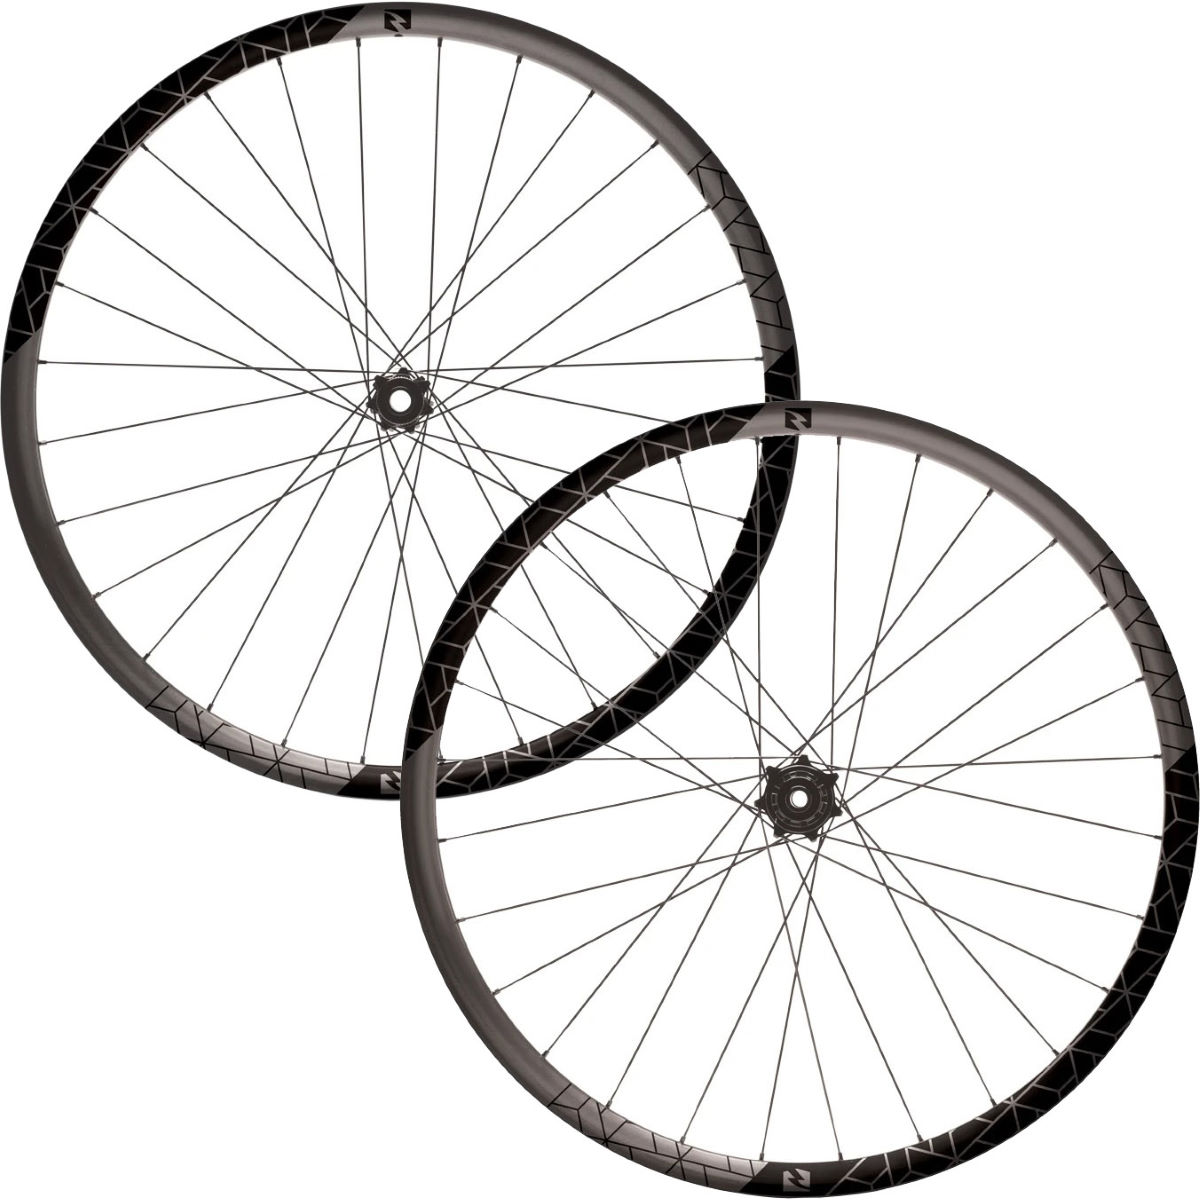 Reynolds Reynolds Black Label 259 Carbon MTB Wheelset   Wheel Sets